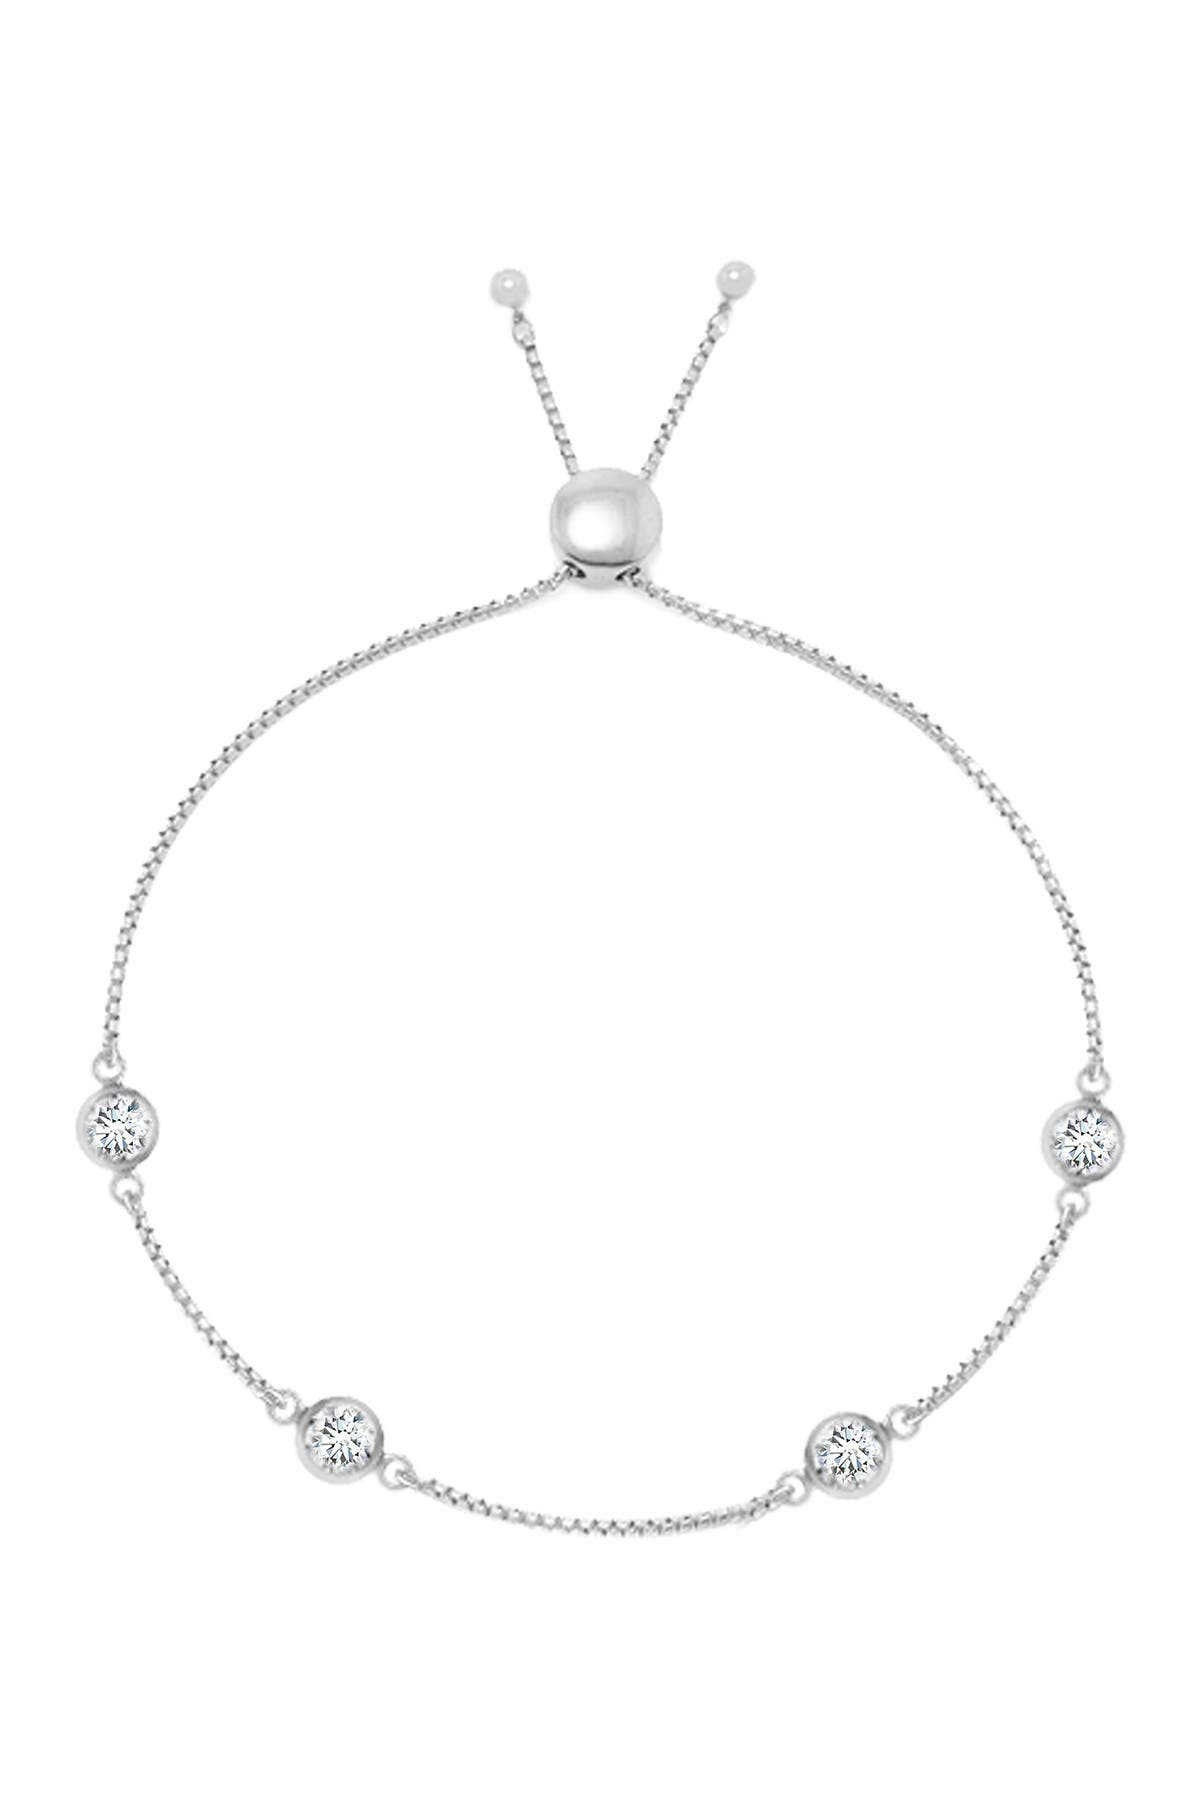 Image of Savvy Cie Sterling Silver Simulated Diamonds by the Yard Bolo Adjustable Bracelet